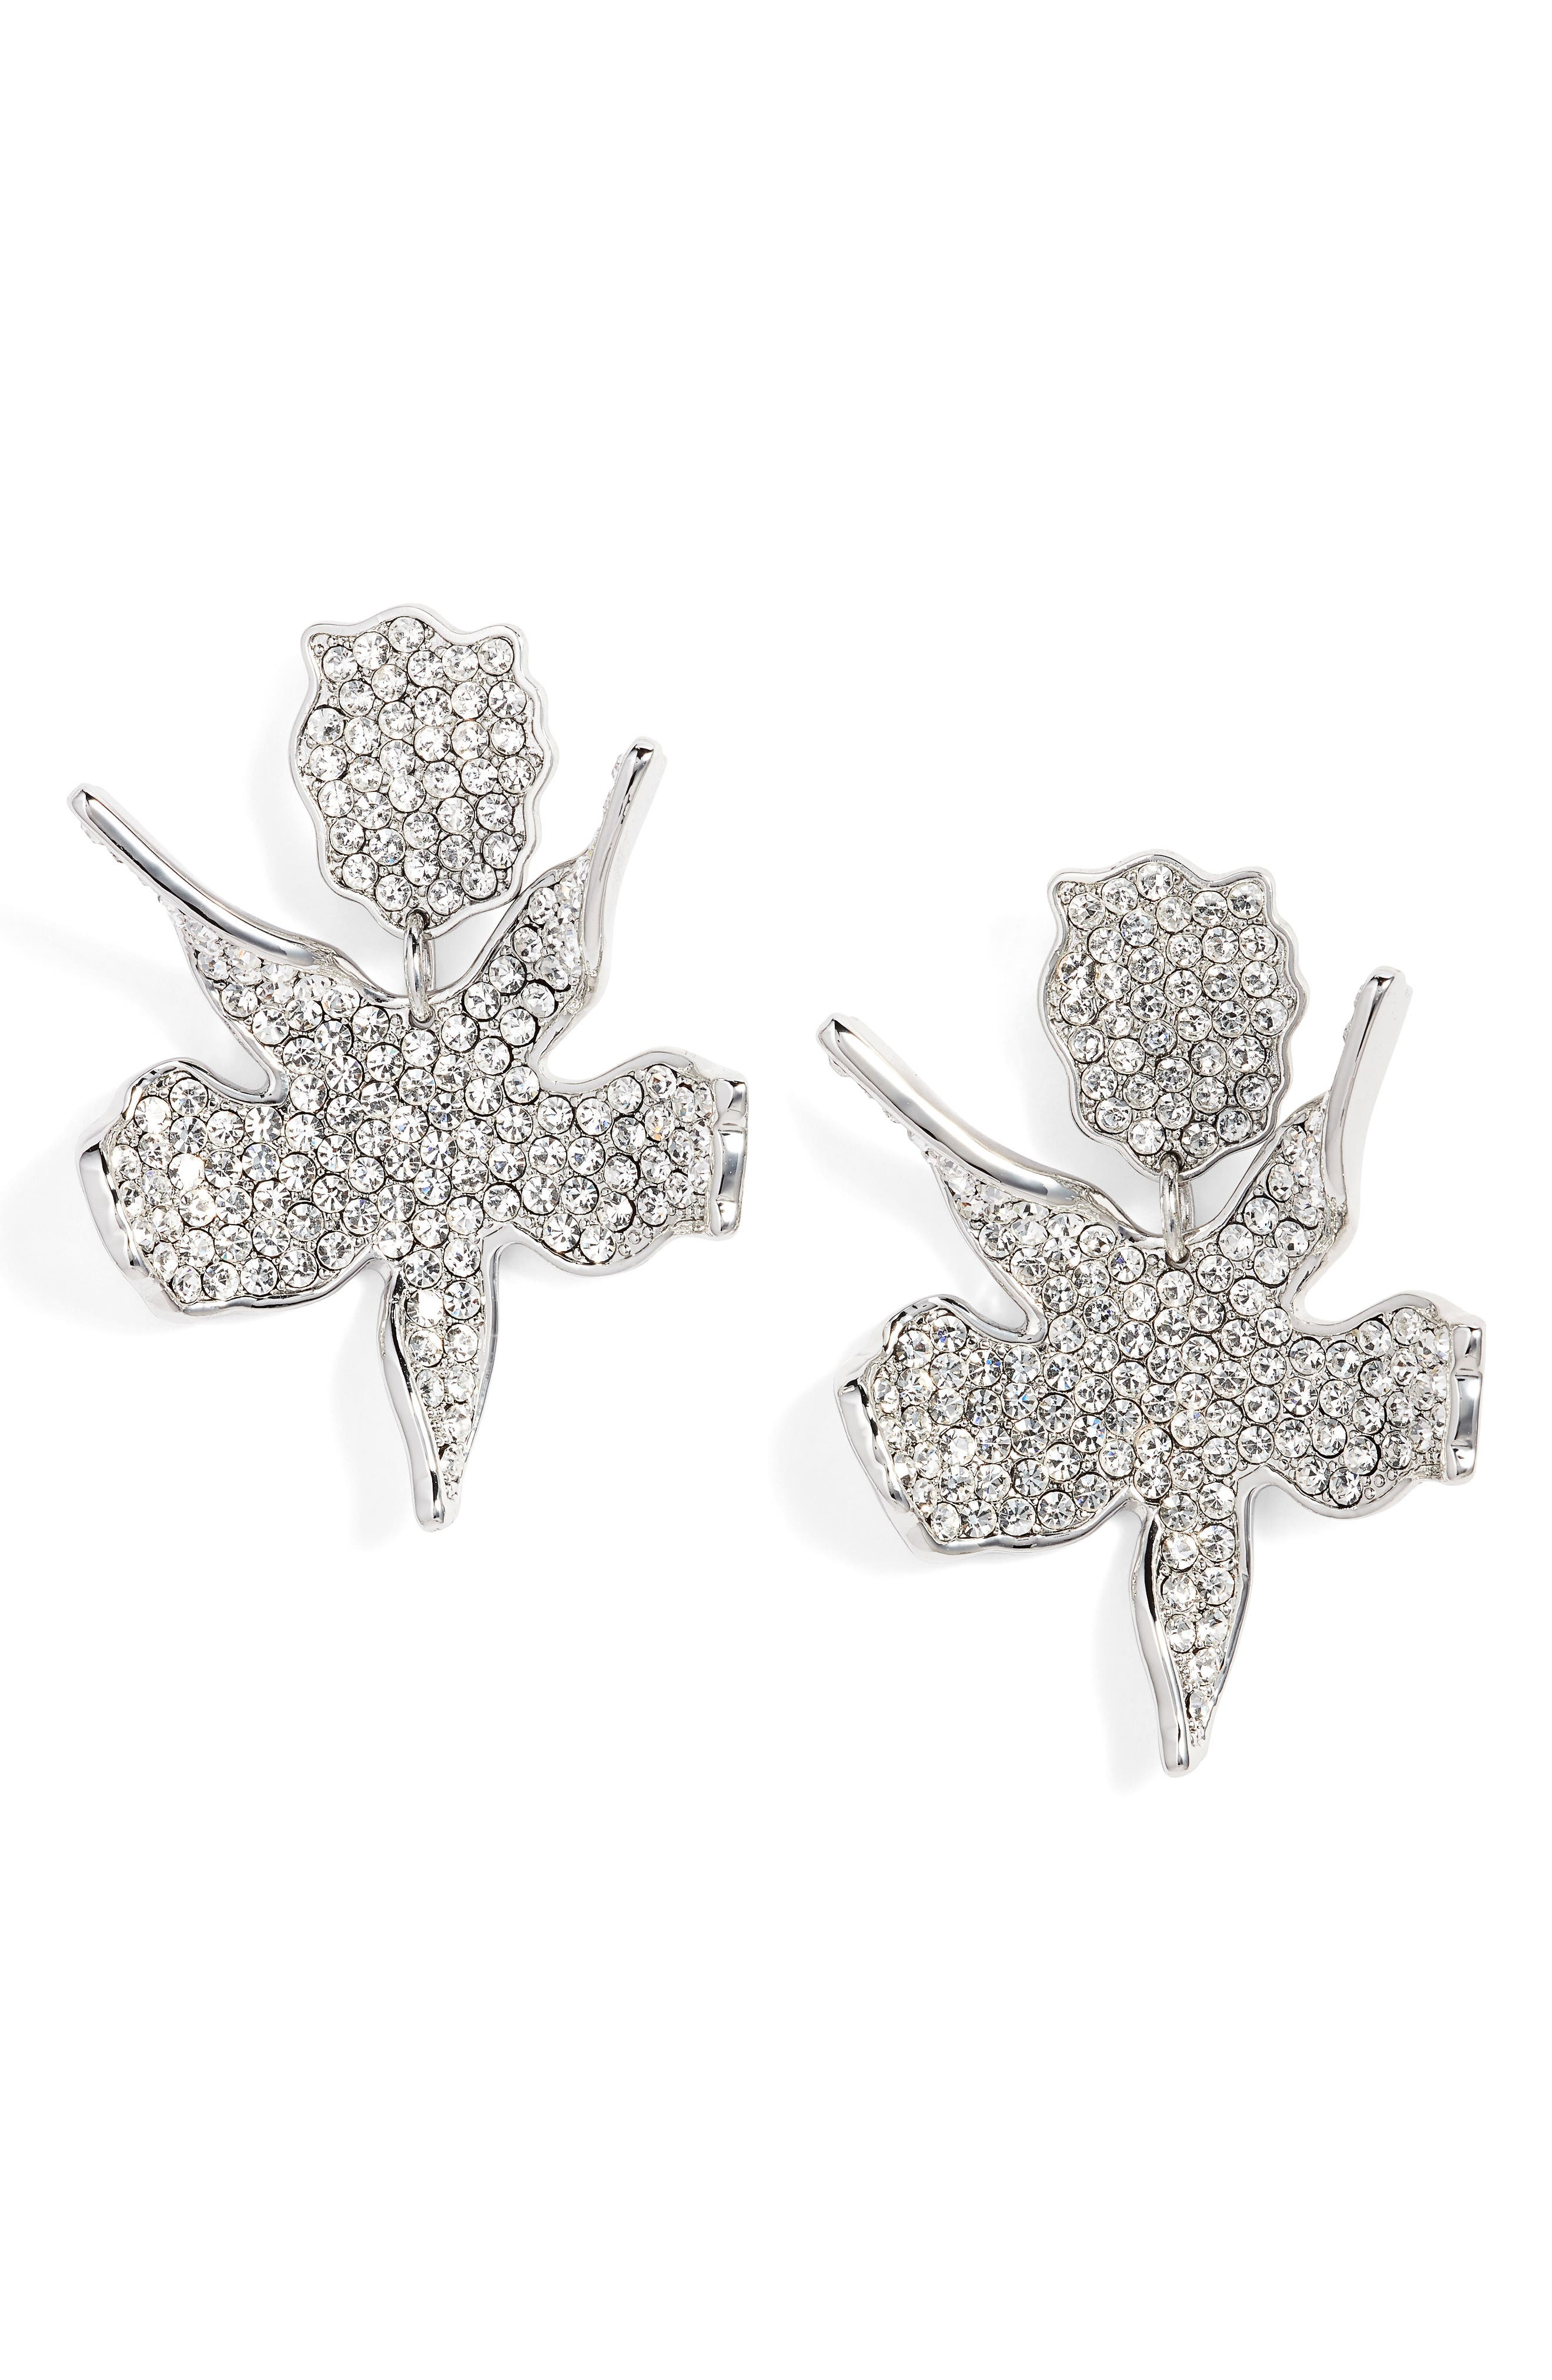 Allover Crystal Lily Earrings,                             Main thumbnail 1, color,                             100